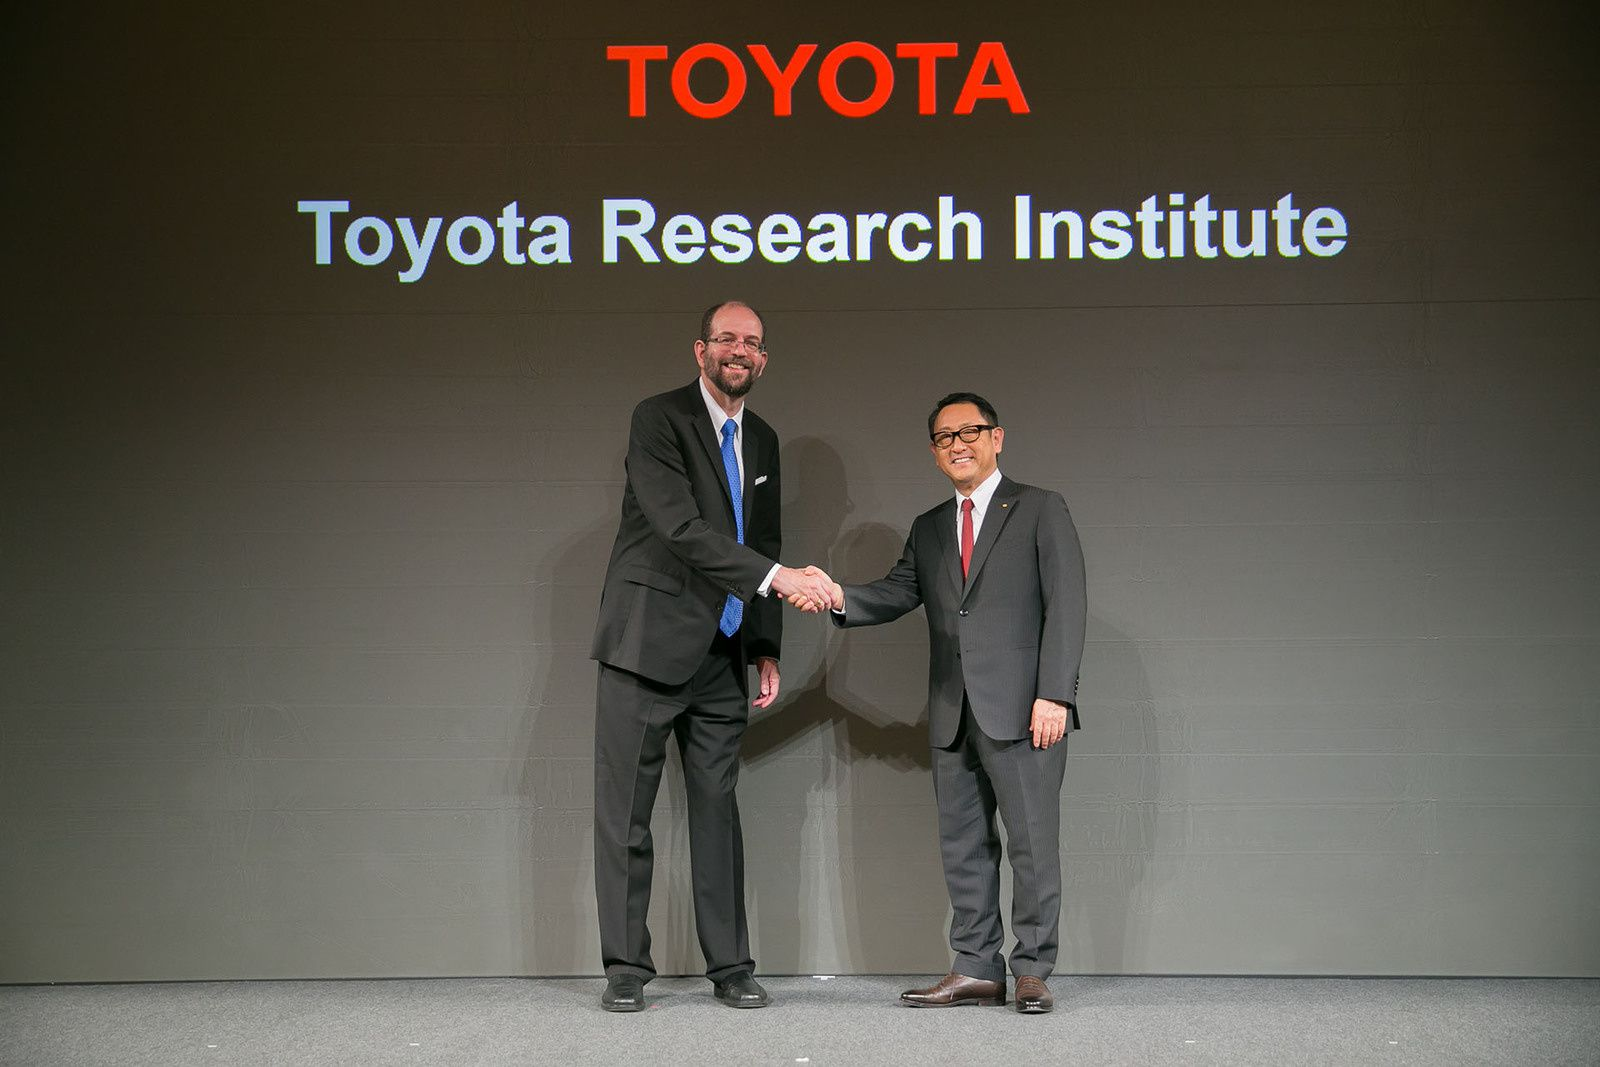 Executive Technical Advisor Gill A. Pratt with President Akio Toyoda photo Toyota